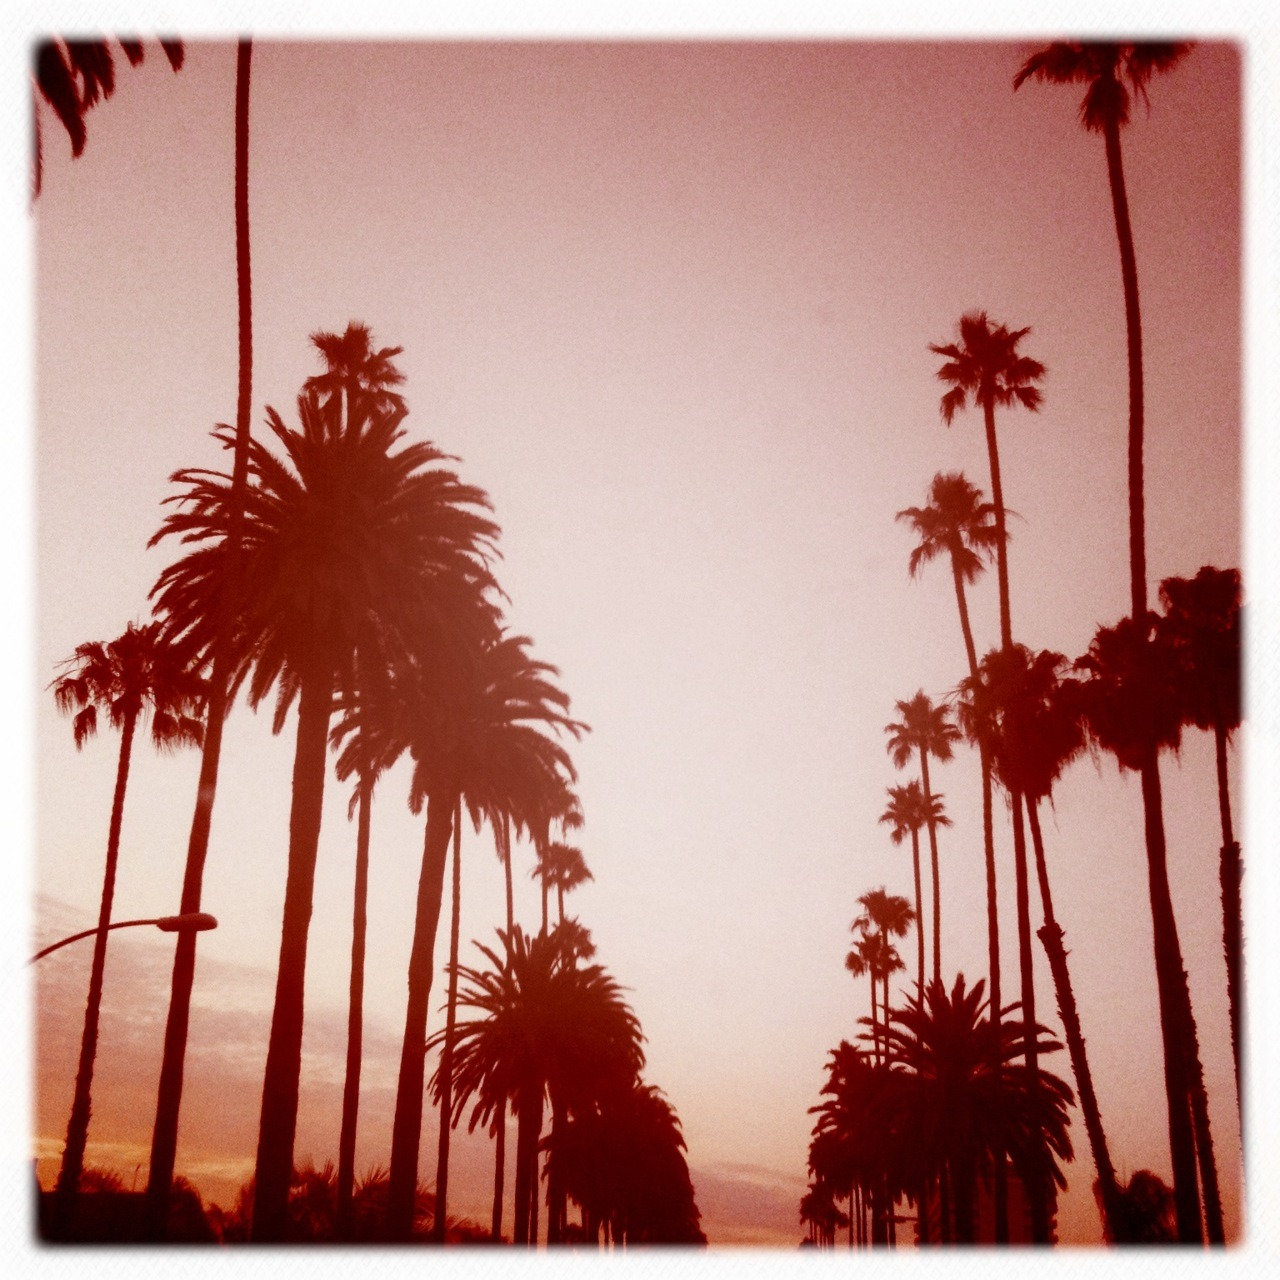 Red Skies At Night… Kaimal Mark II Lens, Ina's 1935 Film, No Flash, Taken with Hipstamatic